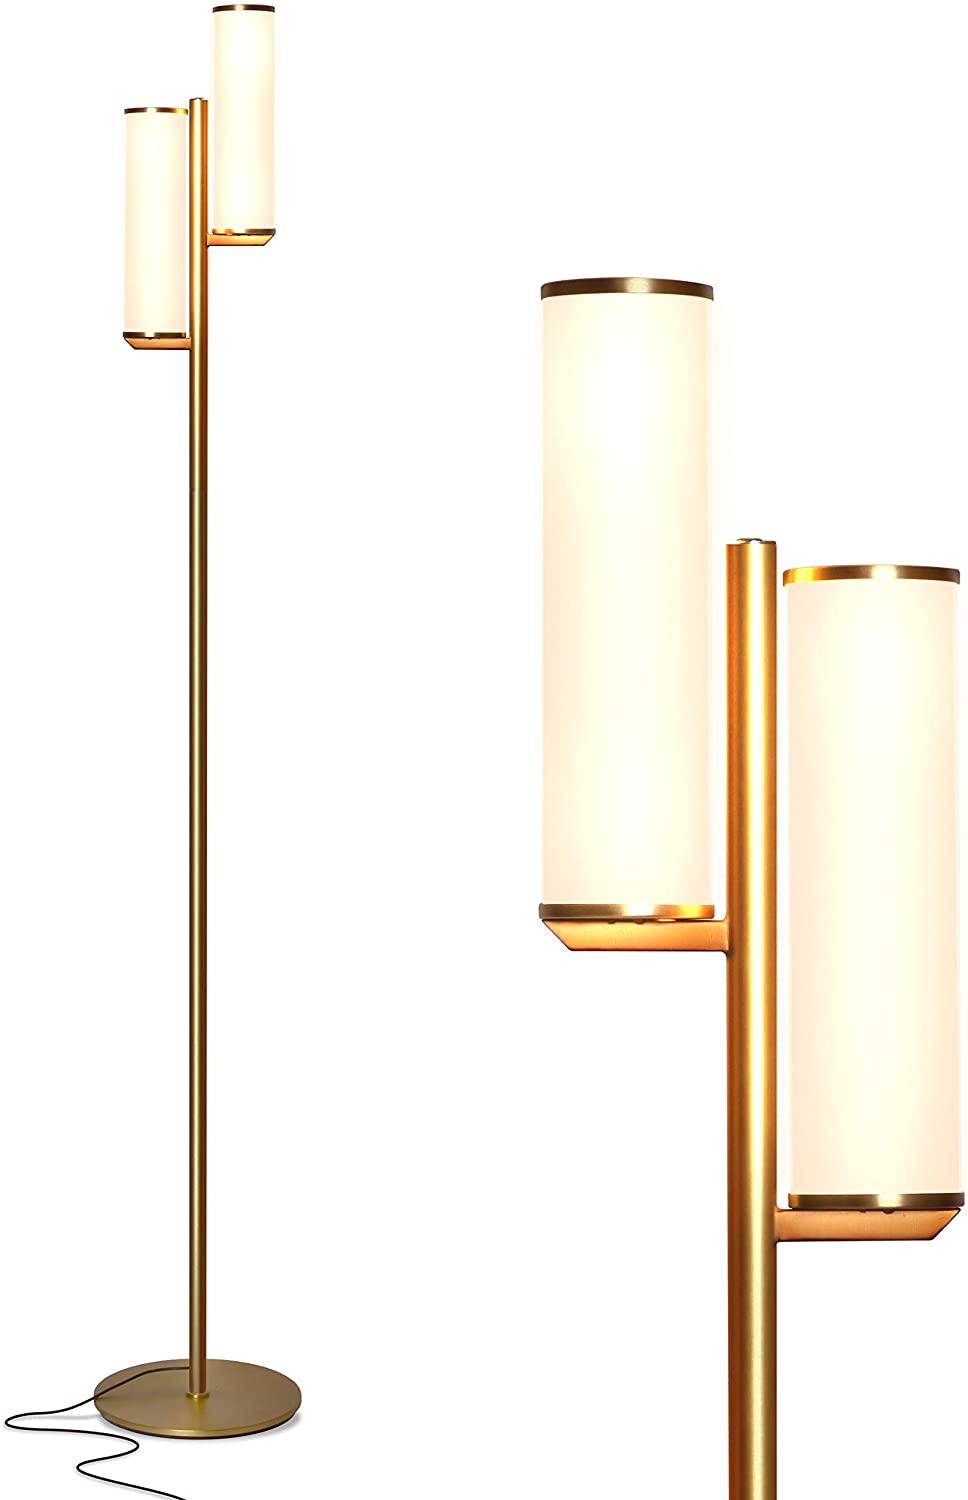 Brightech Gemini - Mid Century Modern Two Light Floor Lamp for Living Room Bright Lighting - Contemporary Dimmable LED Standing Light for Bedrooms & Offices - Gold/Antique Brass Indoor Pole Light